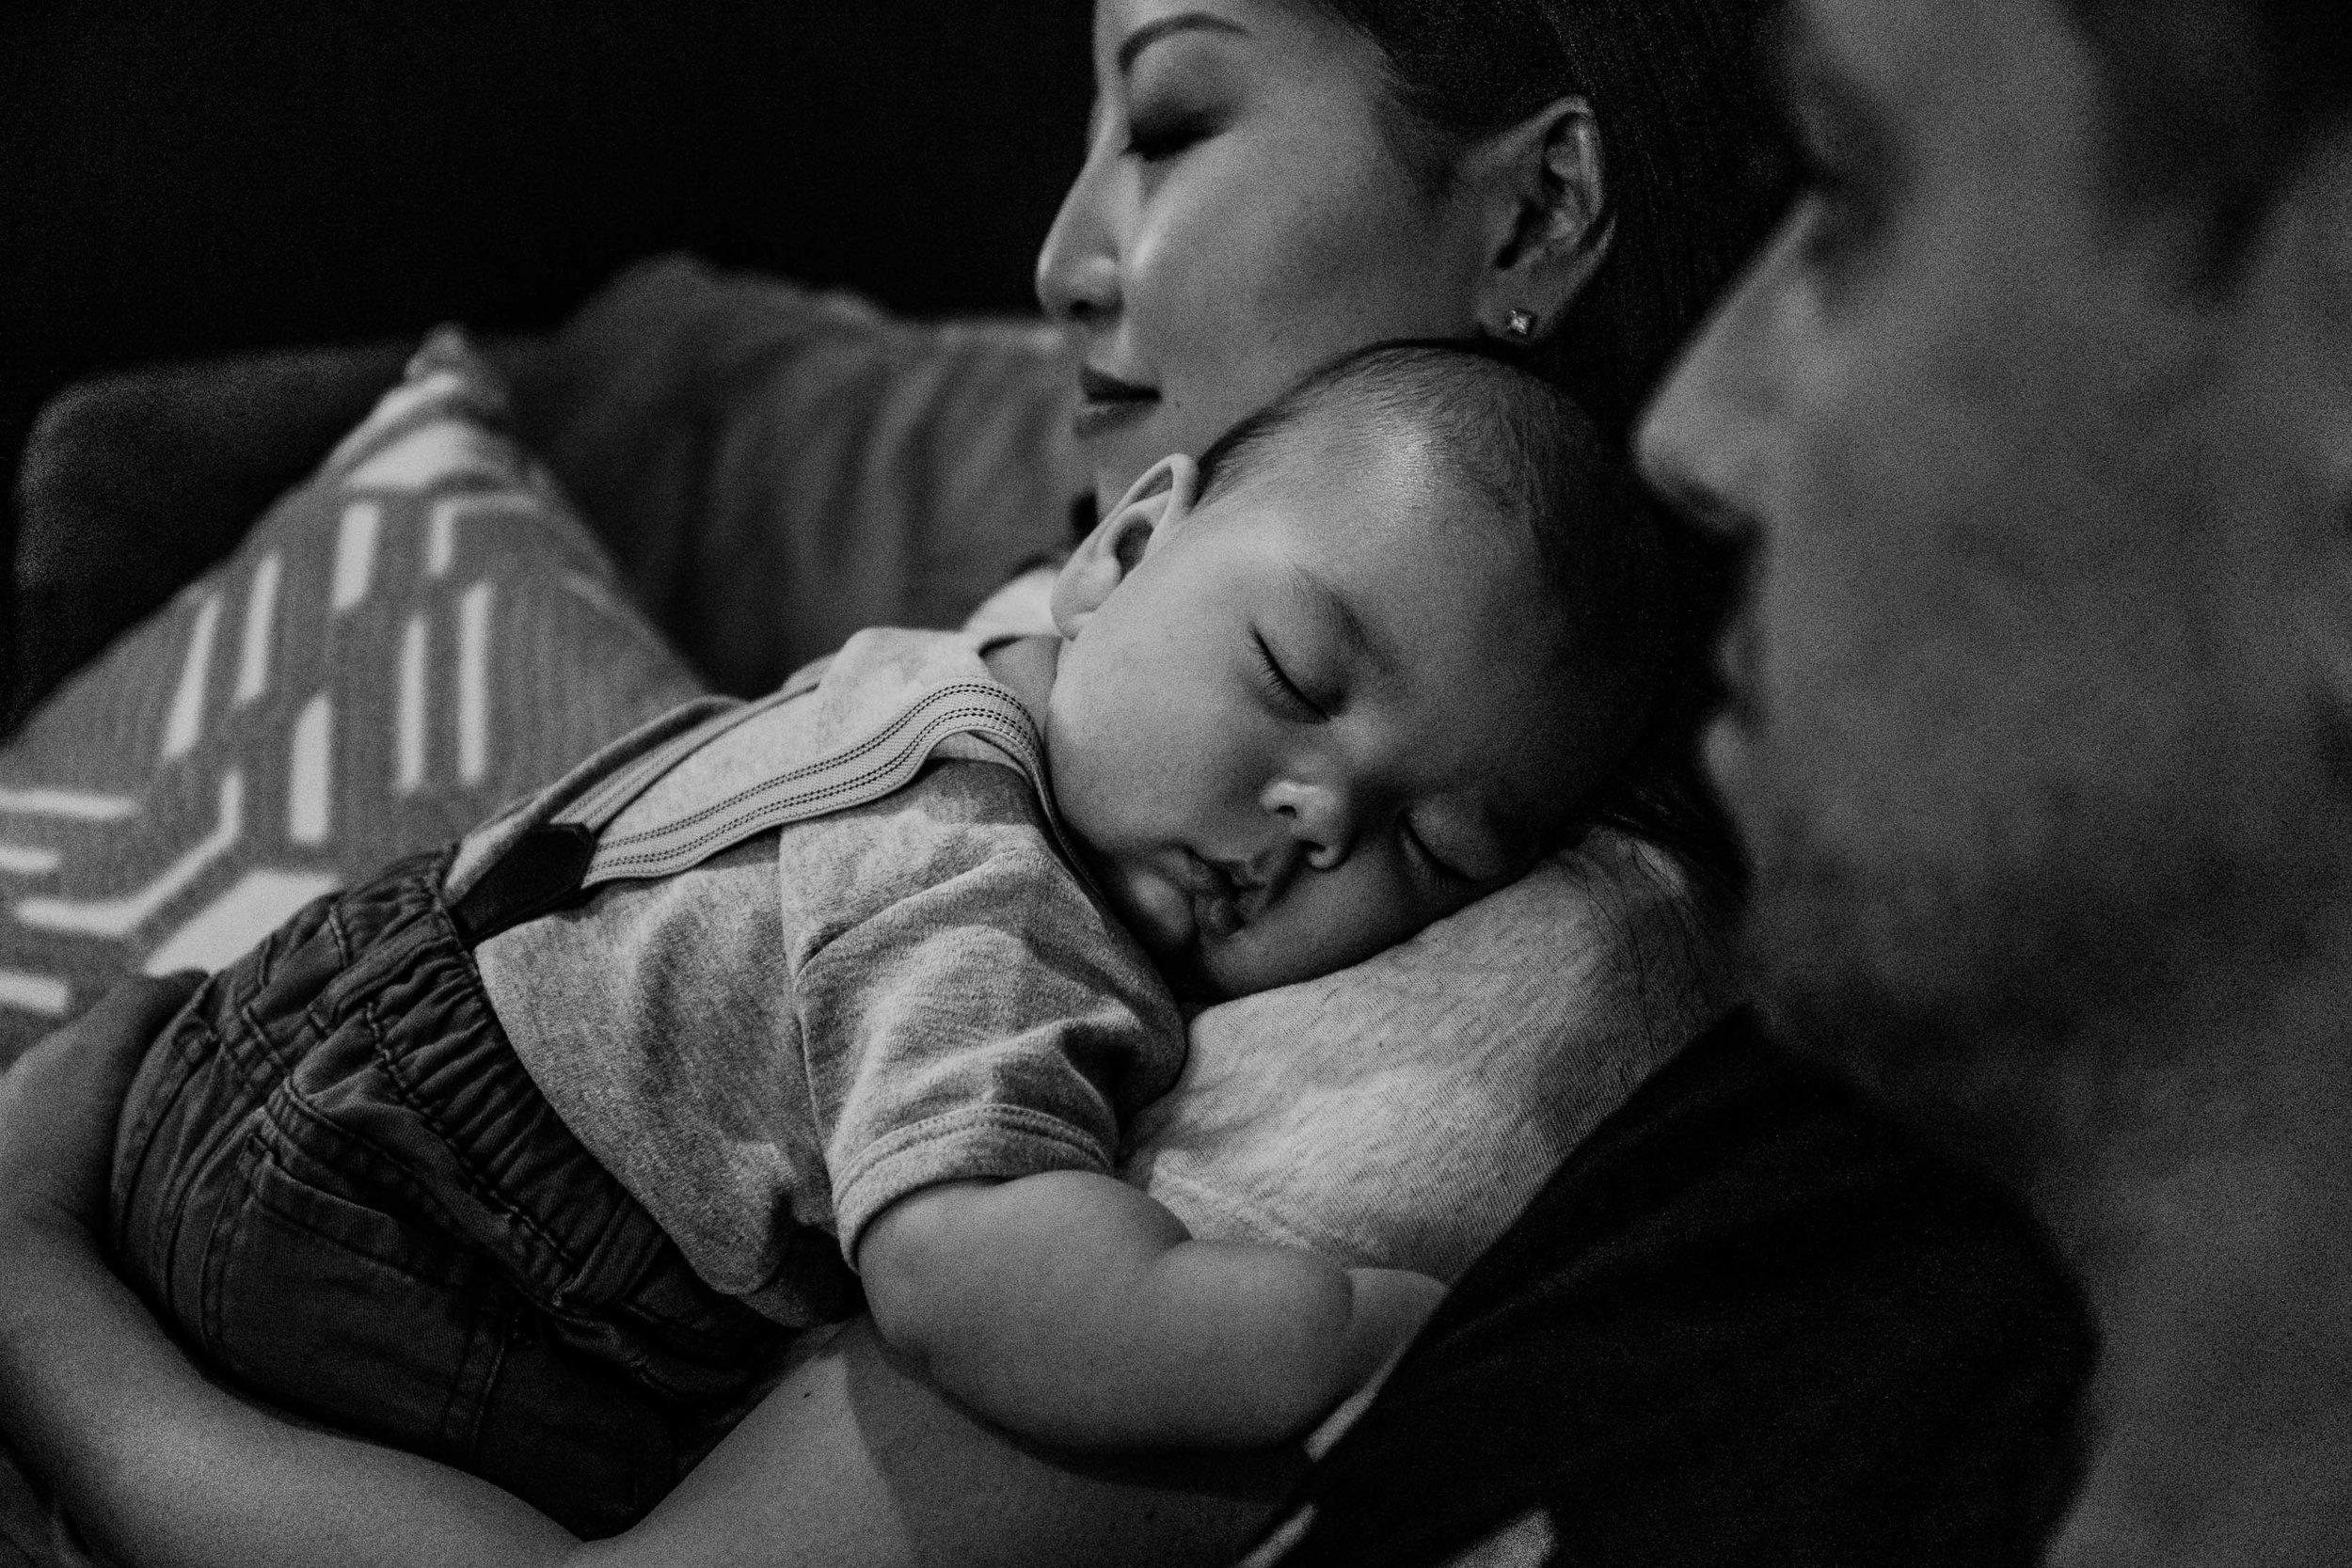 Baby boy sleeping on mum's shoulder while she soaks in a quiet and peaceful moment with dad by her side.